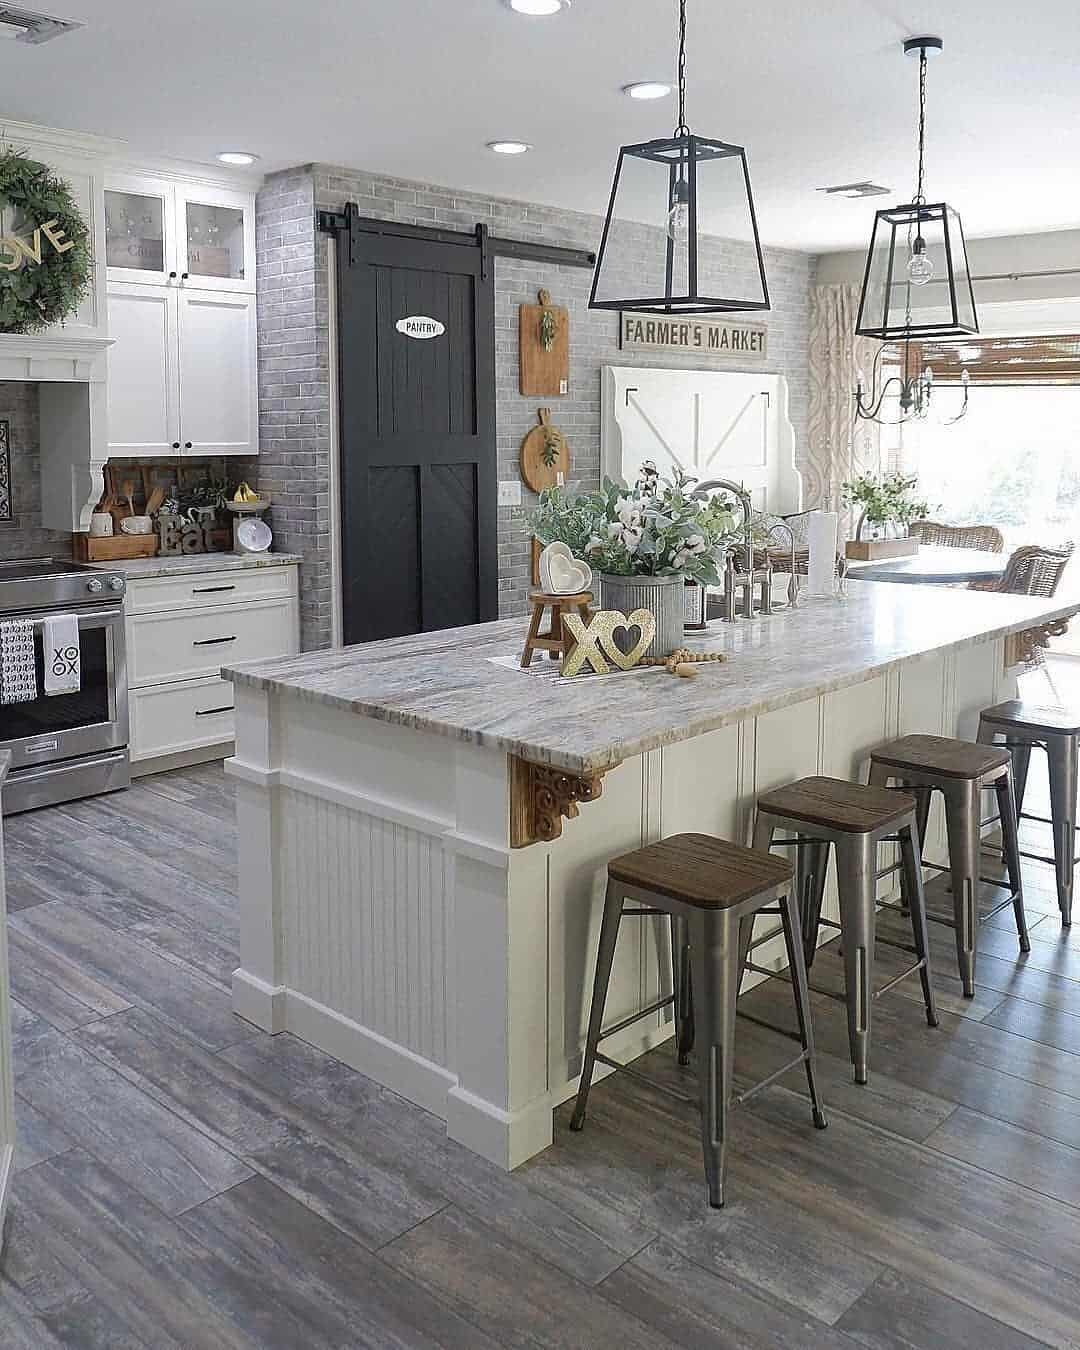 21 African Decorating Ideas For Modern Homes: 21 Clever Ideas For Decorating Your Kitchen In Farm House